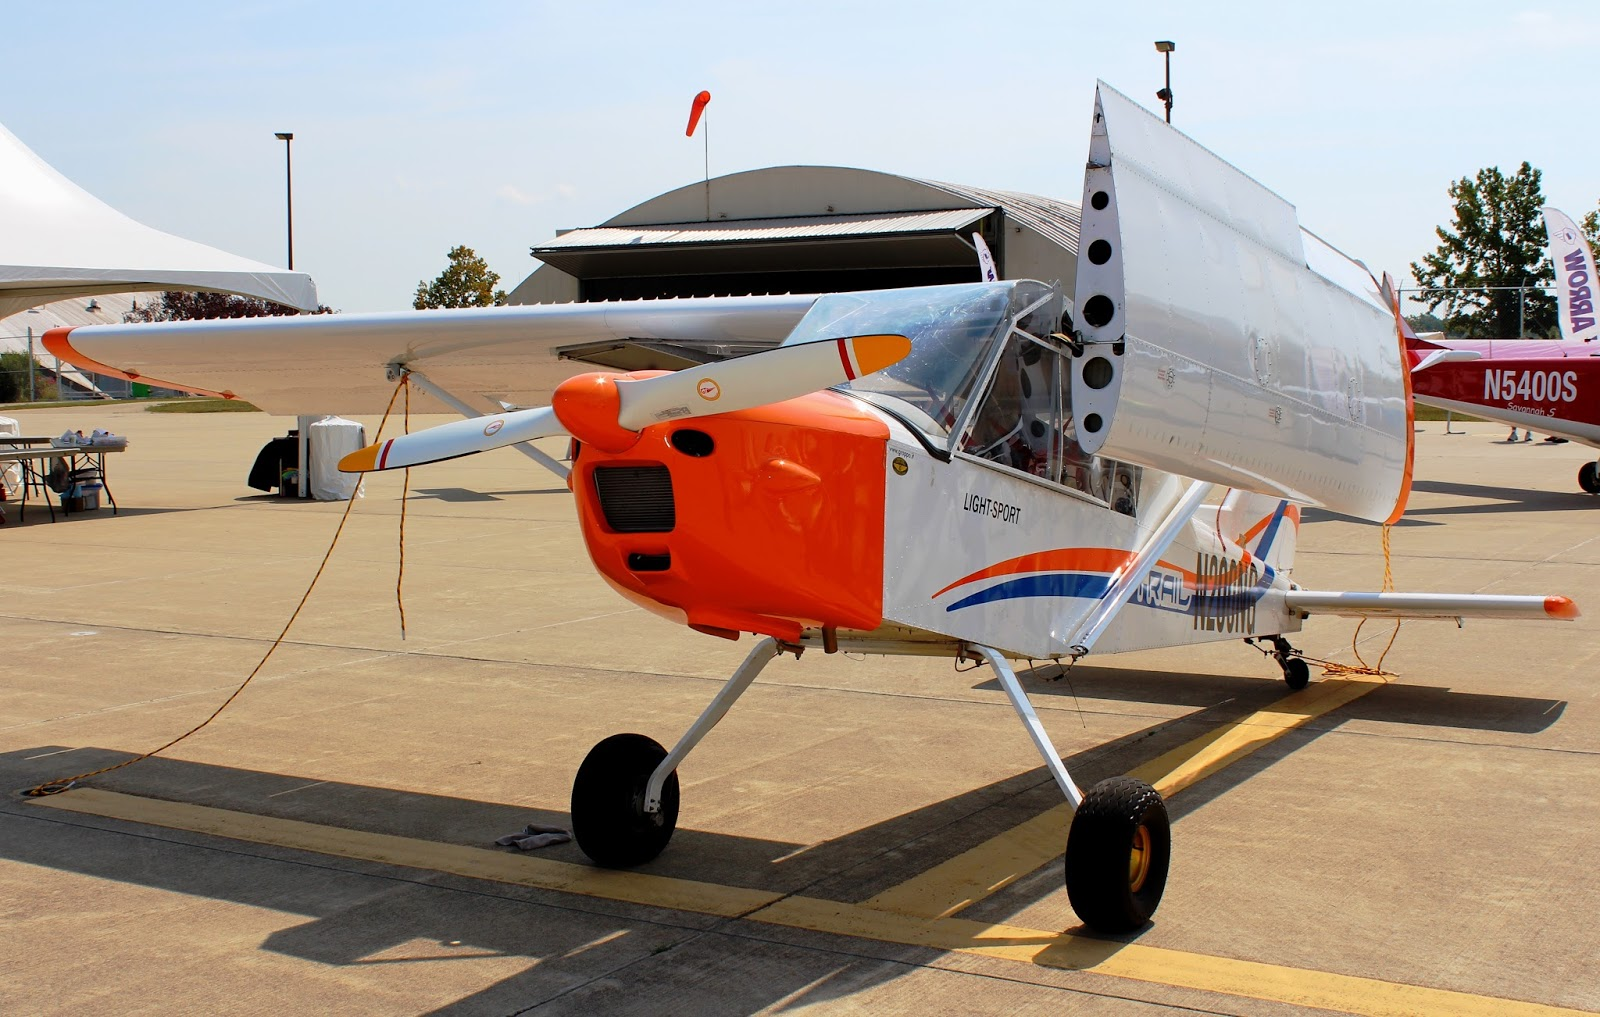 Sport aircraft manufacturers pictures to pin on pinterest for E house manufacturers usa